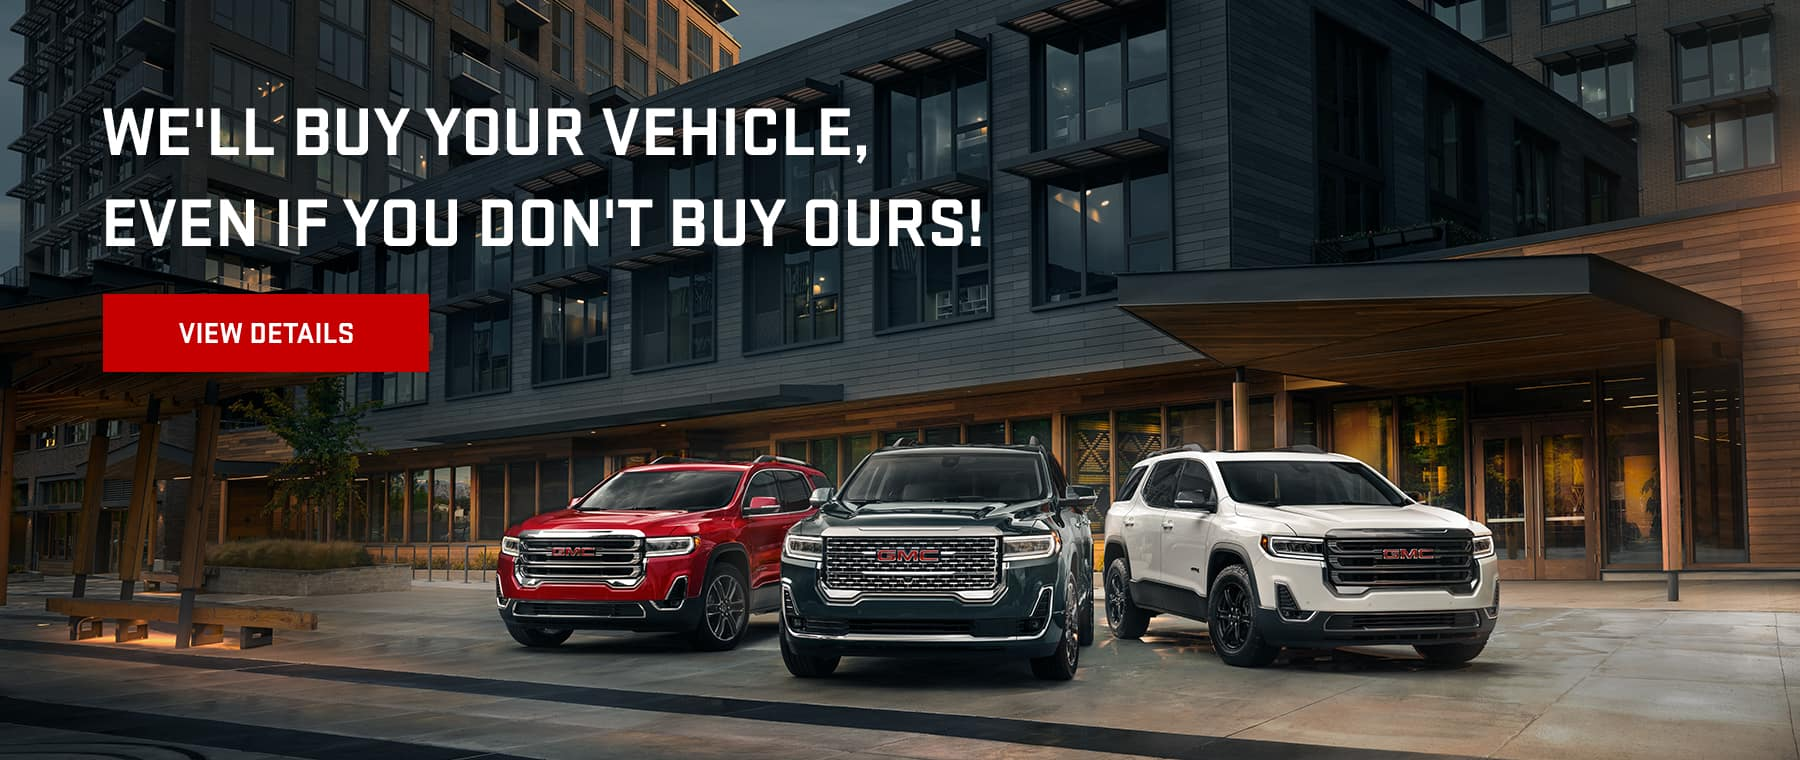 We'll Buy Your Vehicle, Even If You Don't Buy Ours!